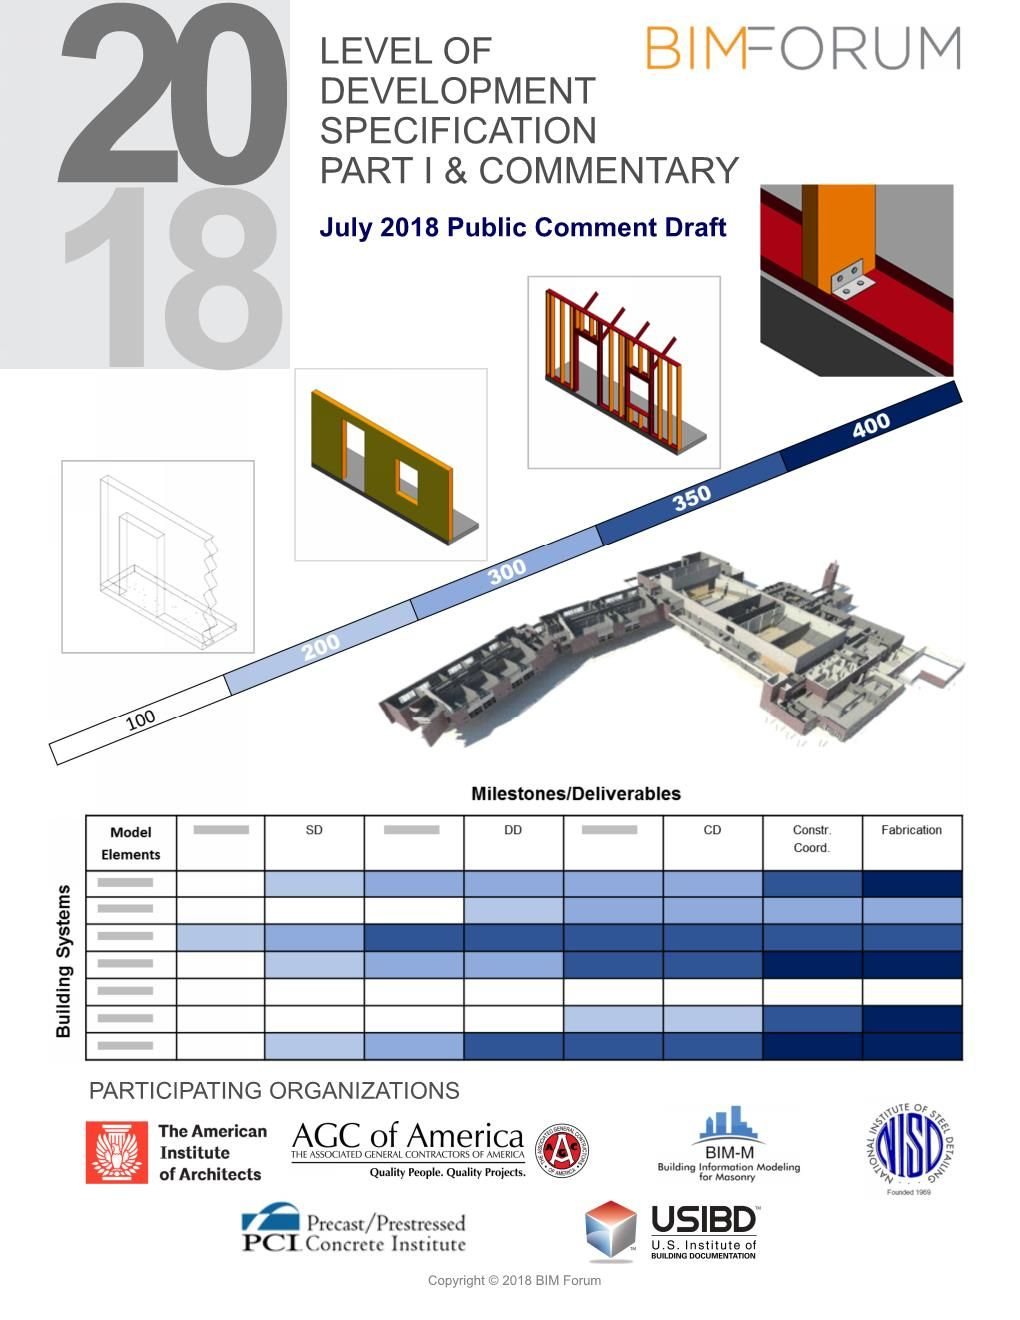 Imagen 2. Portada LOD Specification 2018 (BIM FORUM).